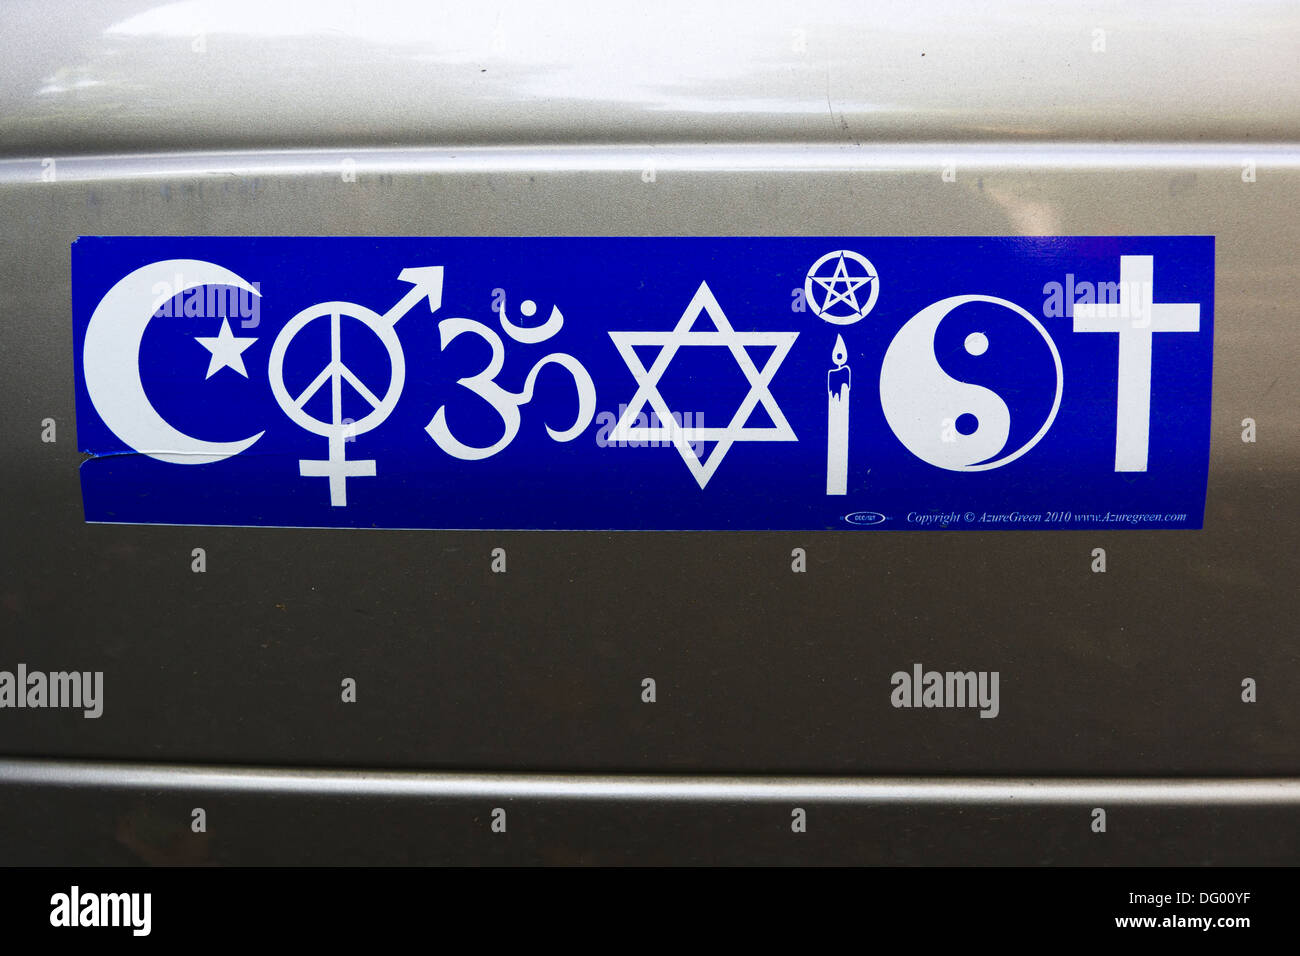 Coexist bumper sticker with symbols of various religions stock image